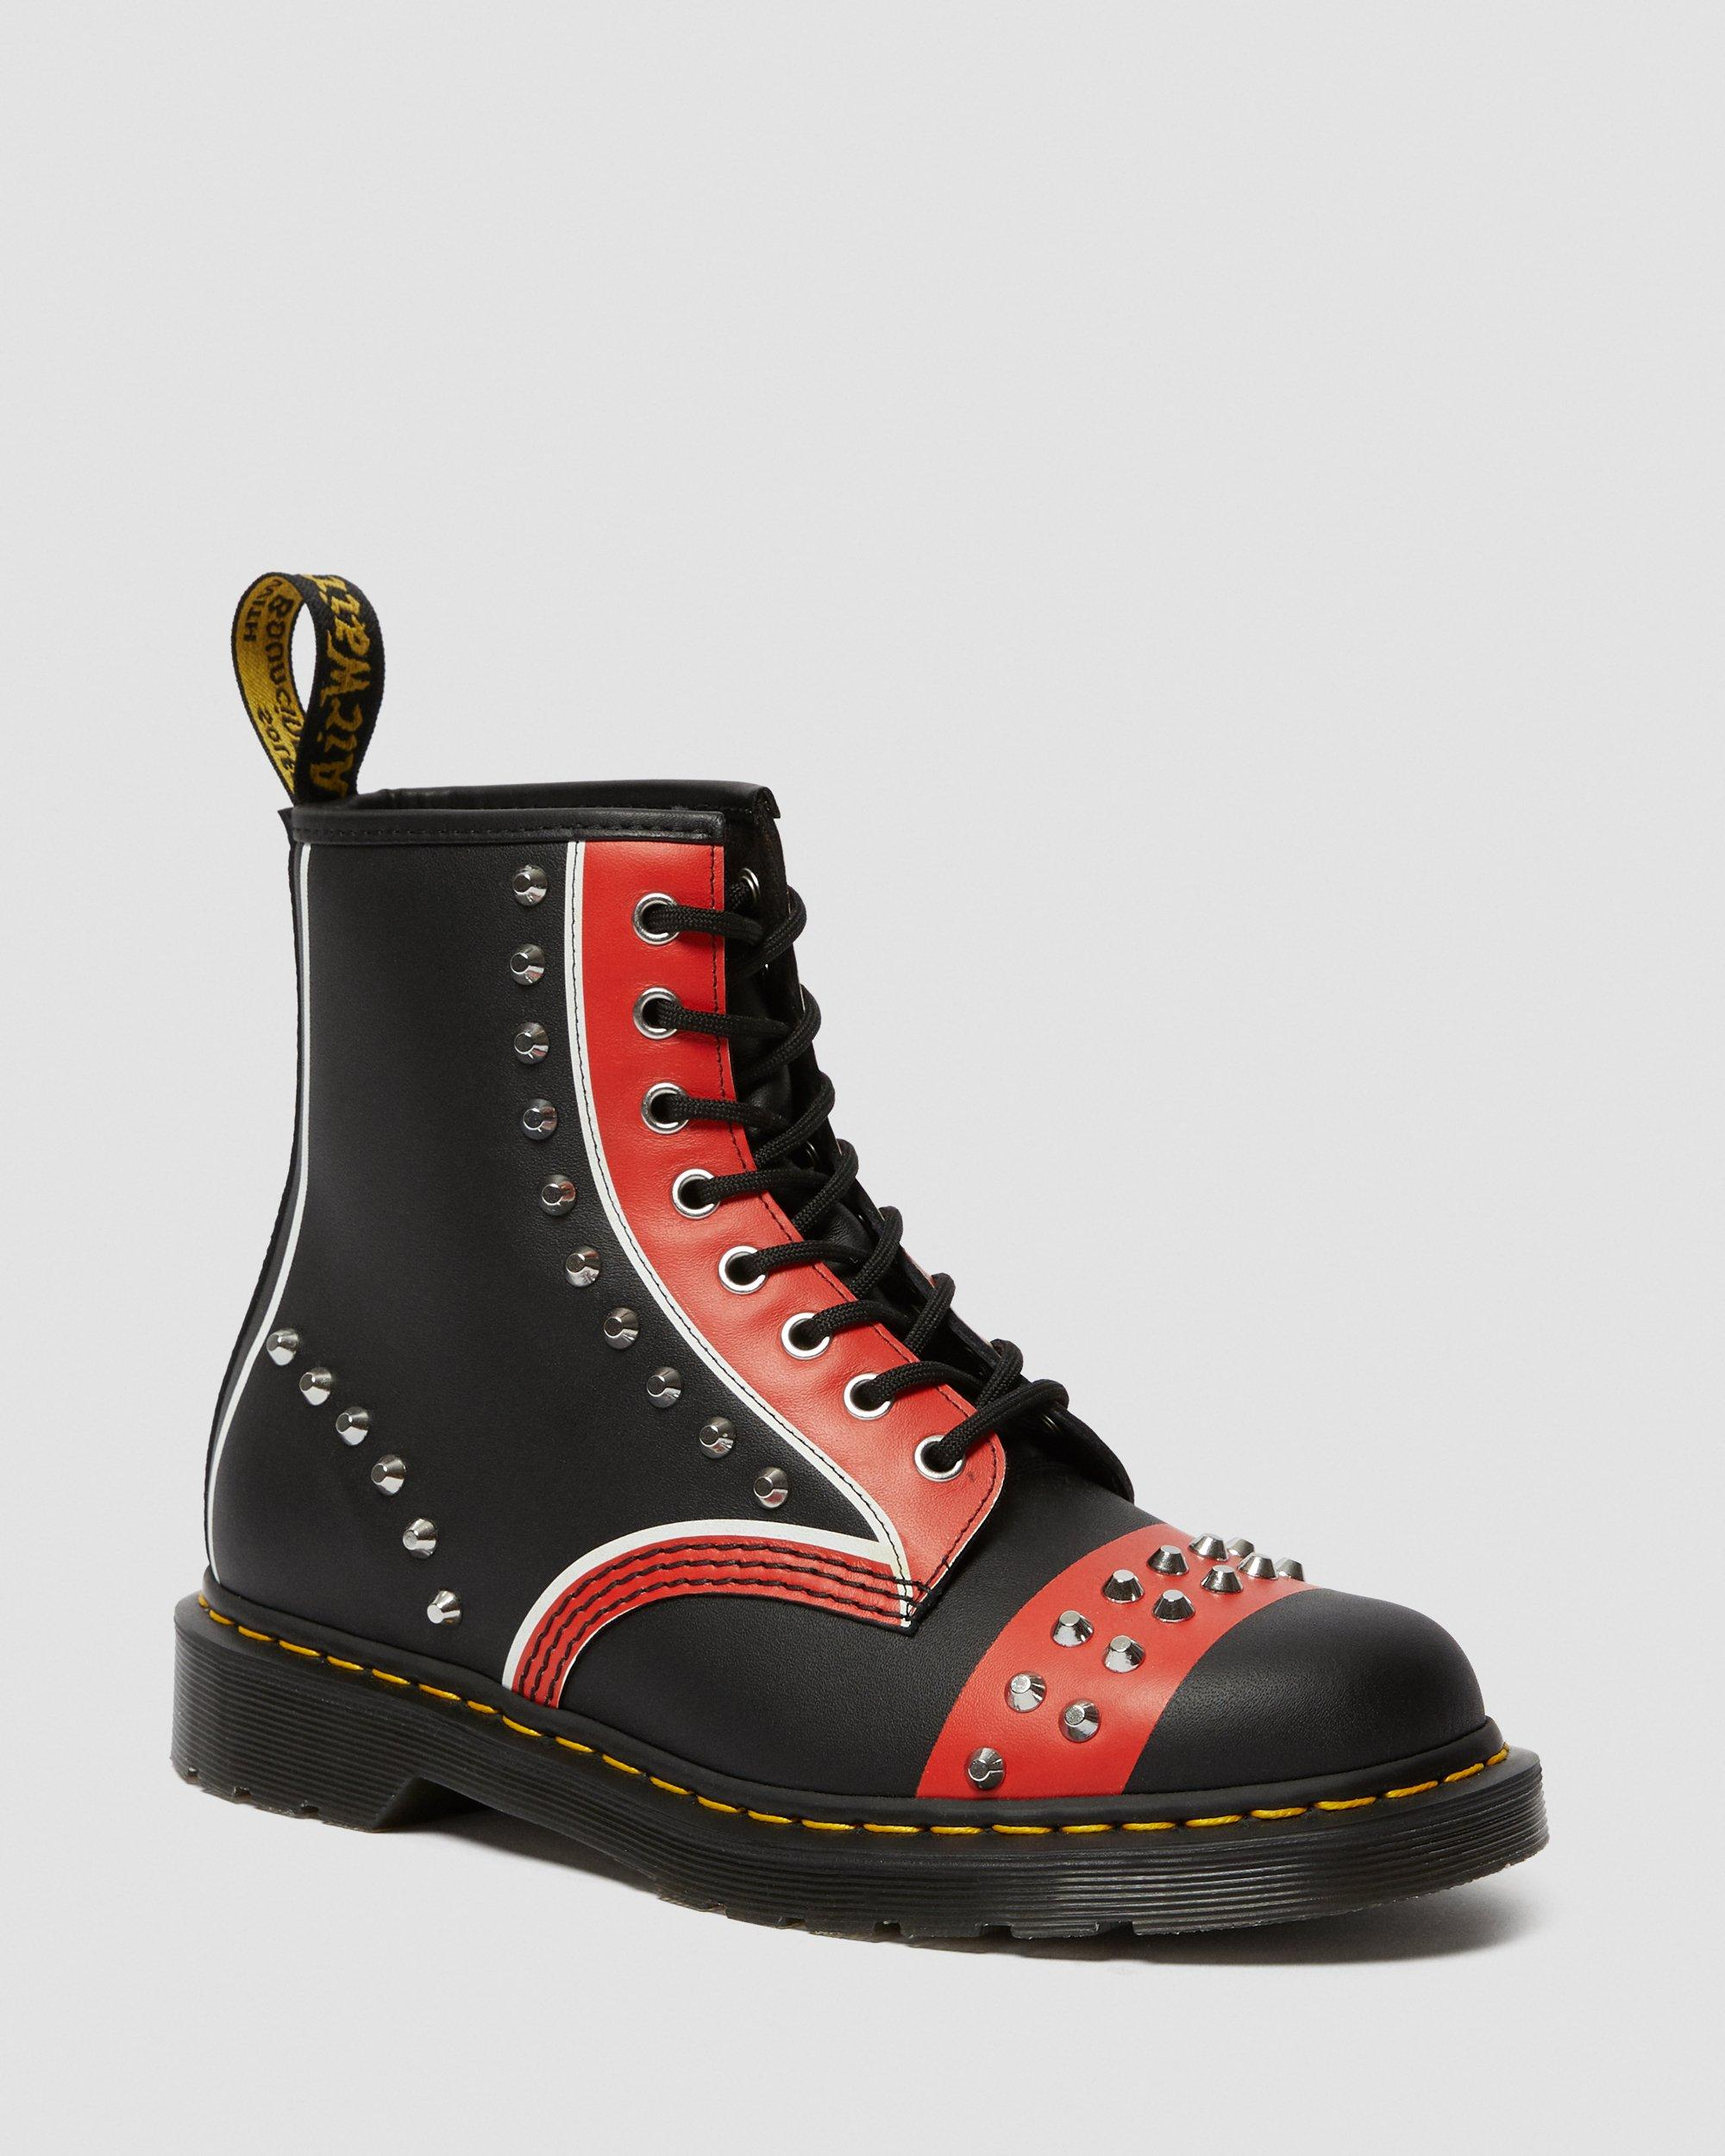 1460 LEATHER STUDDED LACE UP BOOTS | Dr